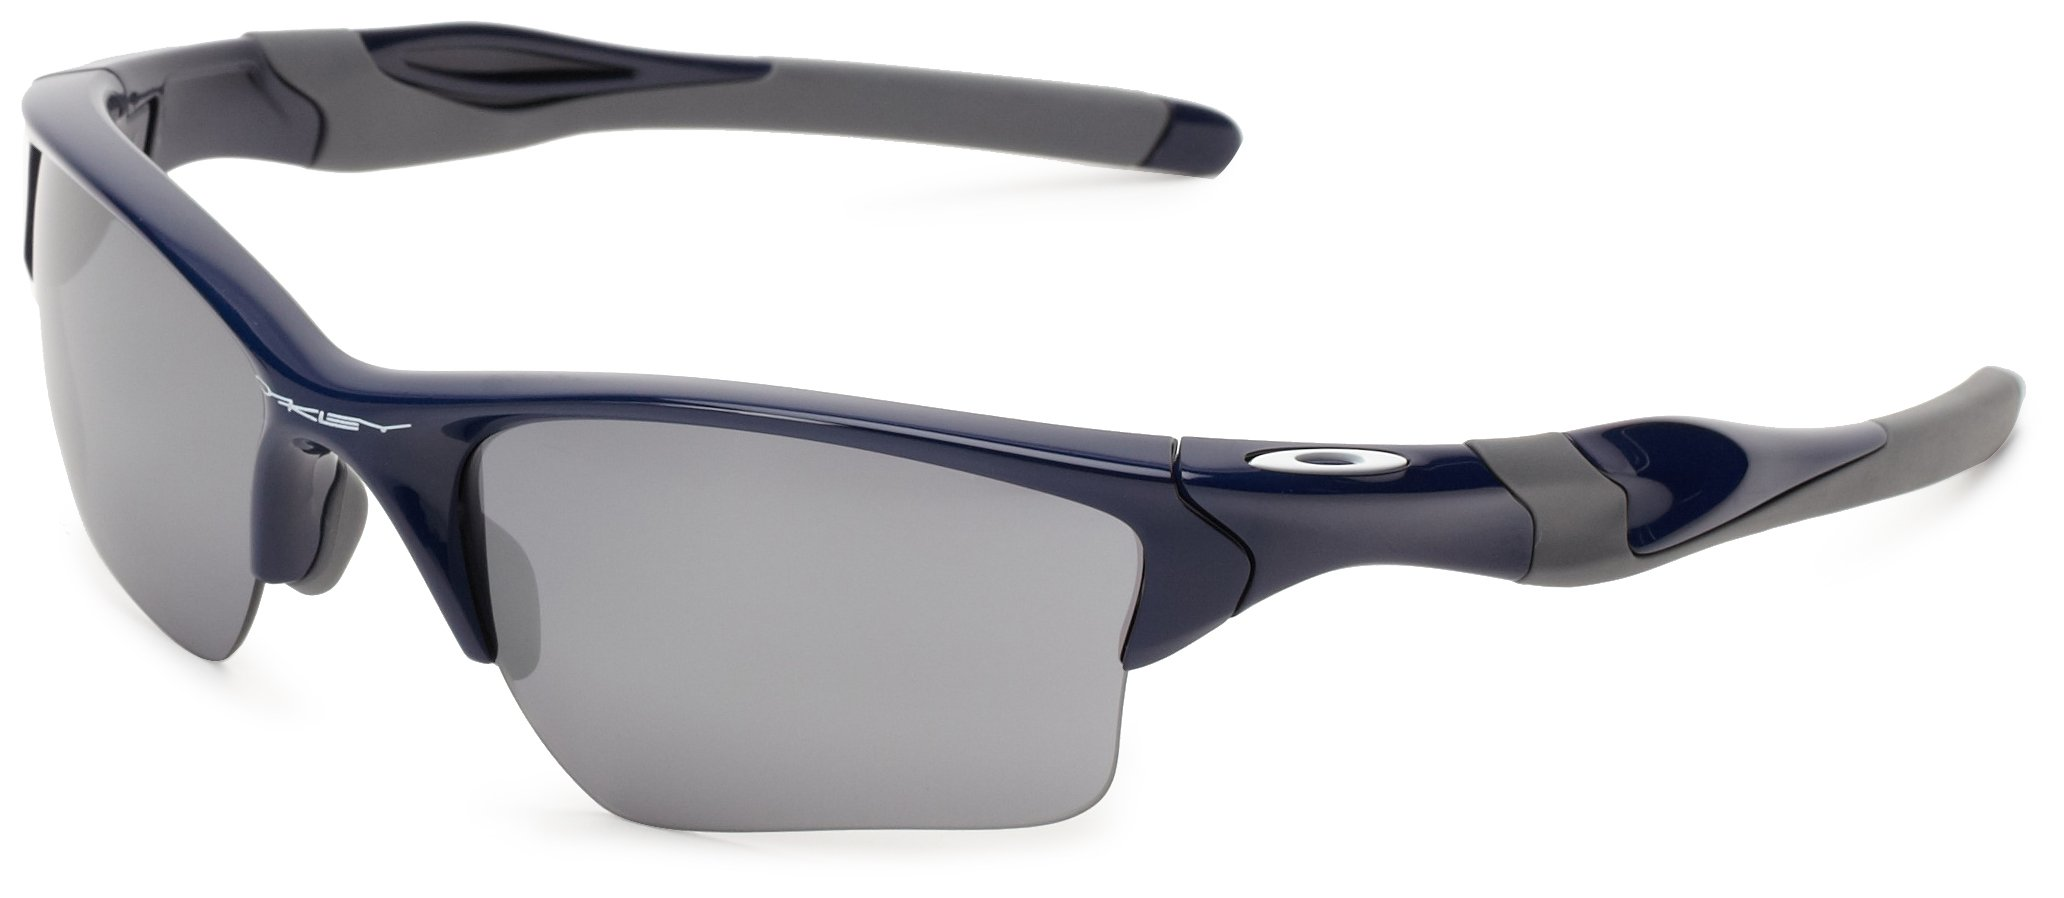 Oakley Half Jacket 2.0 XL OO9154-24 Iridium Sport Sunglasses,Polished Navy/Black Iridium,55 mm by Oakley